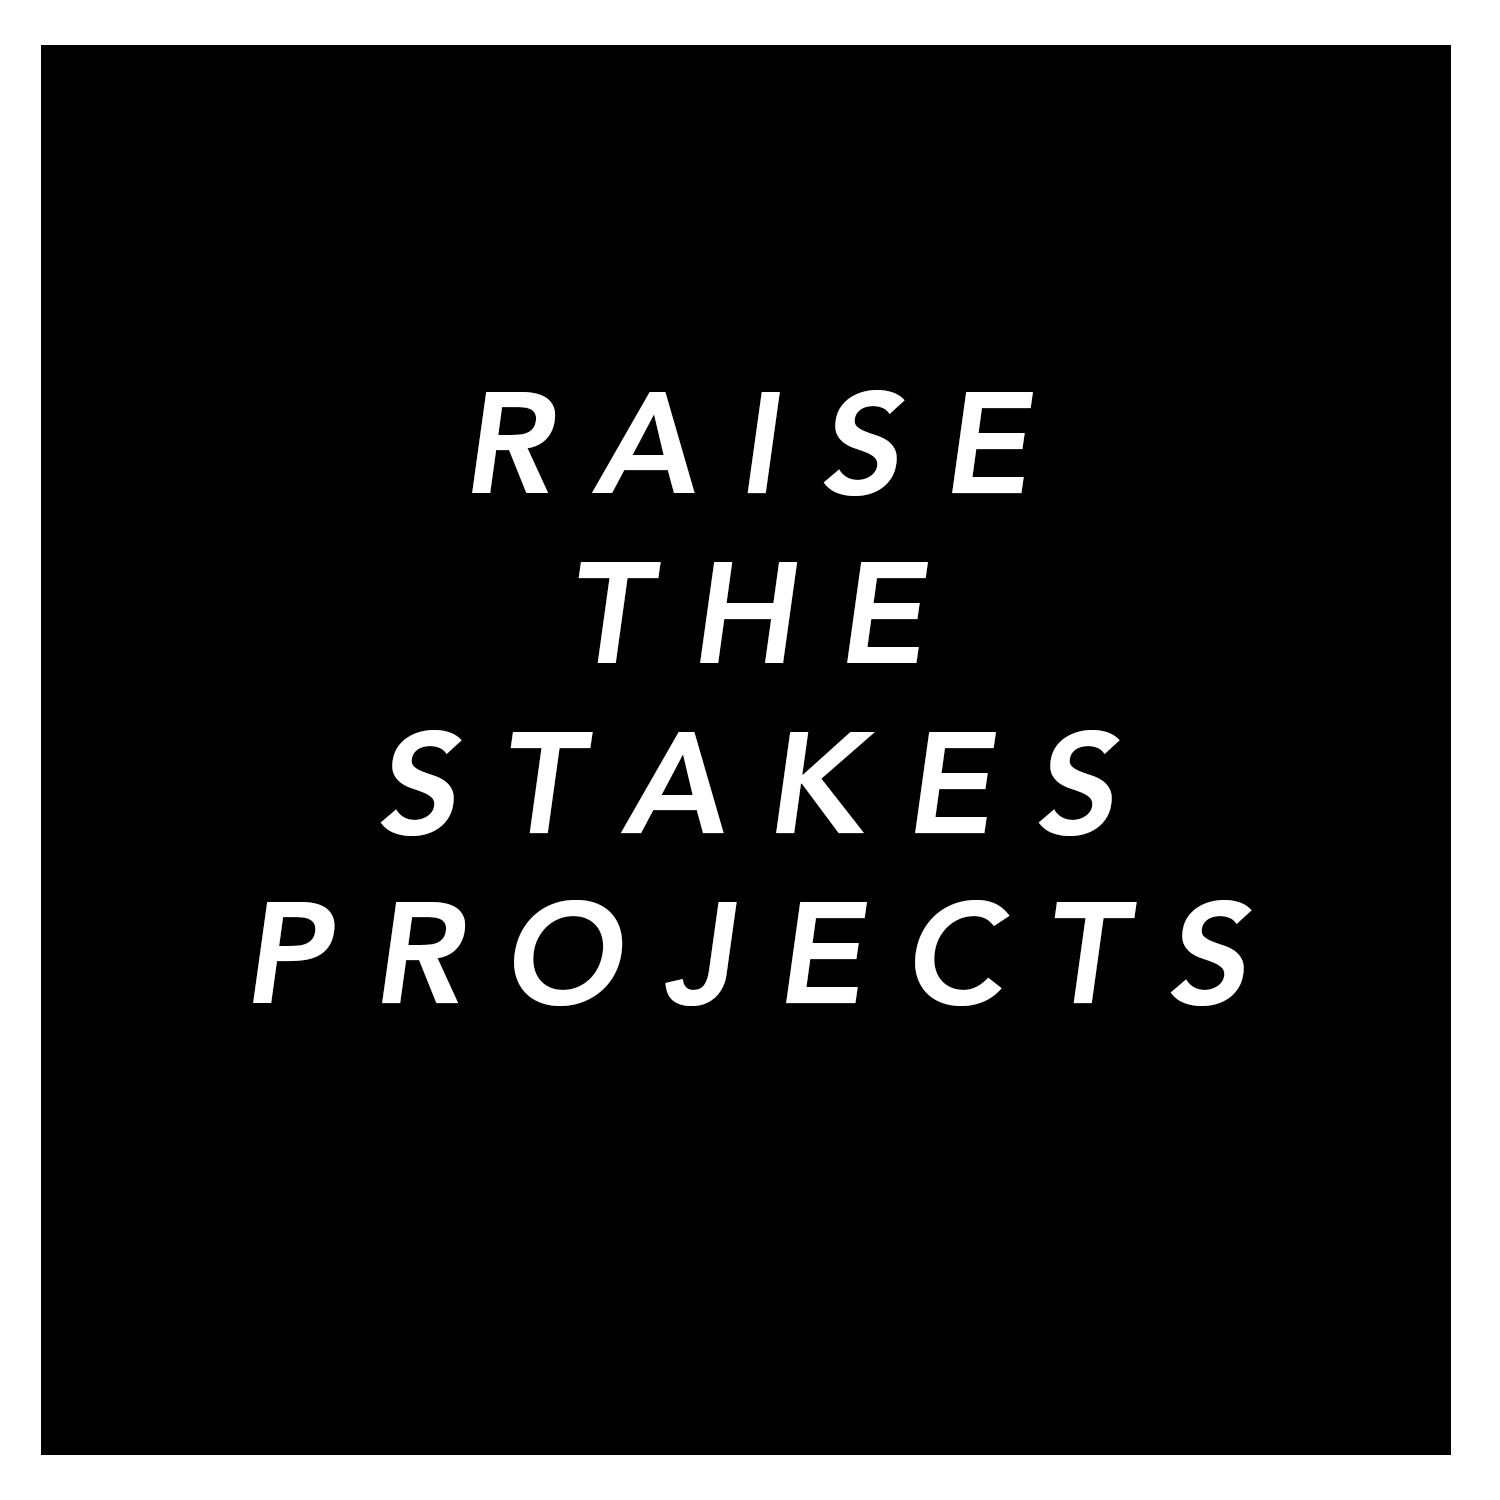 Raise The Stakes Projects